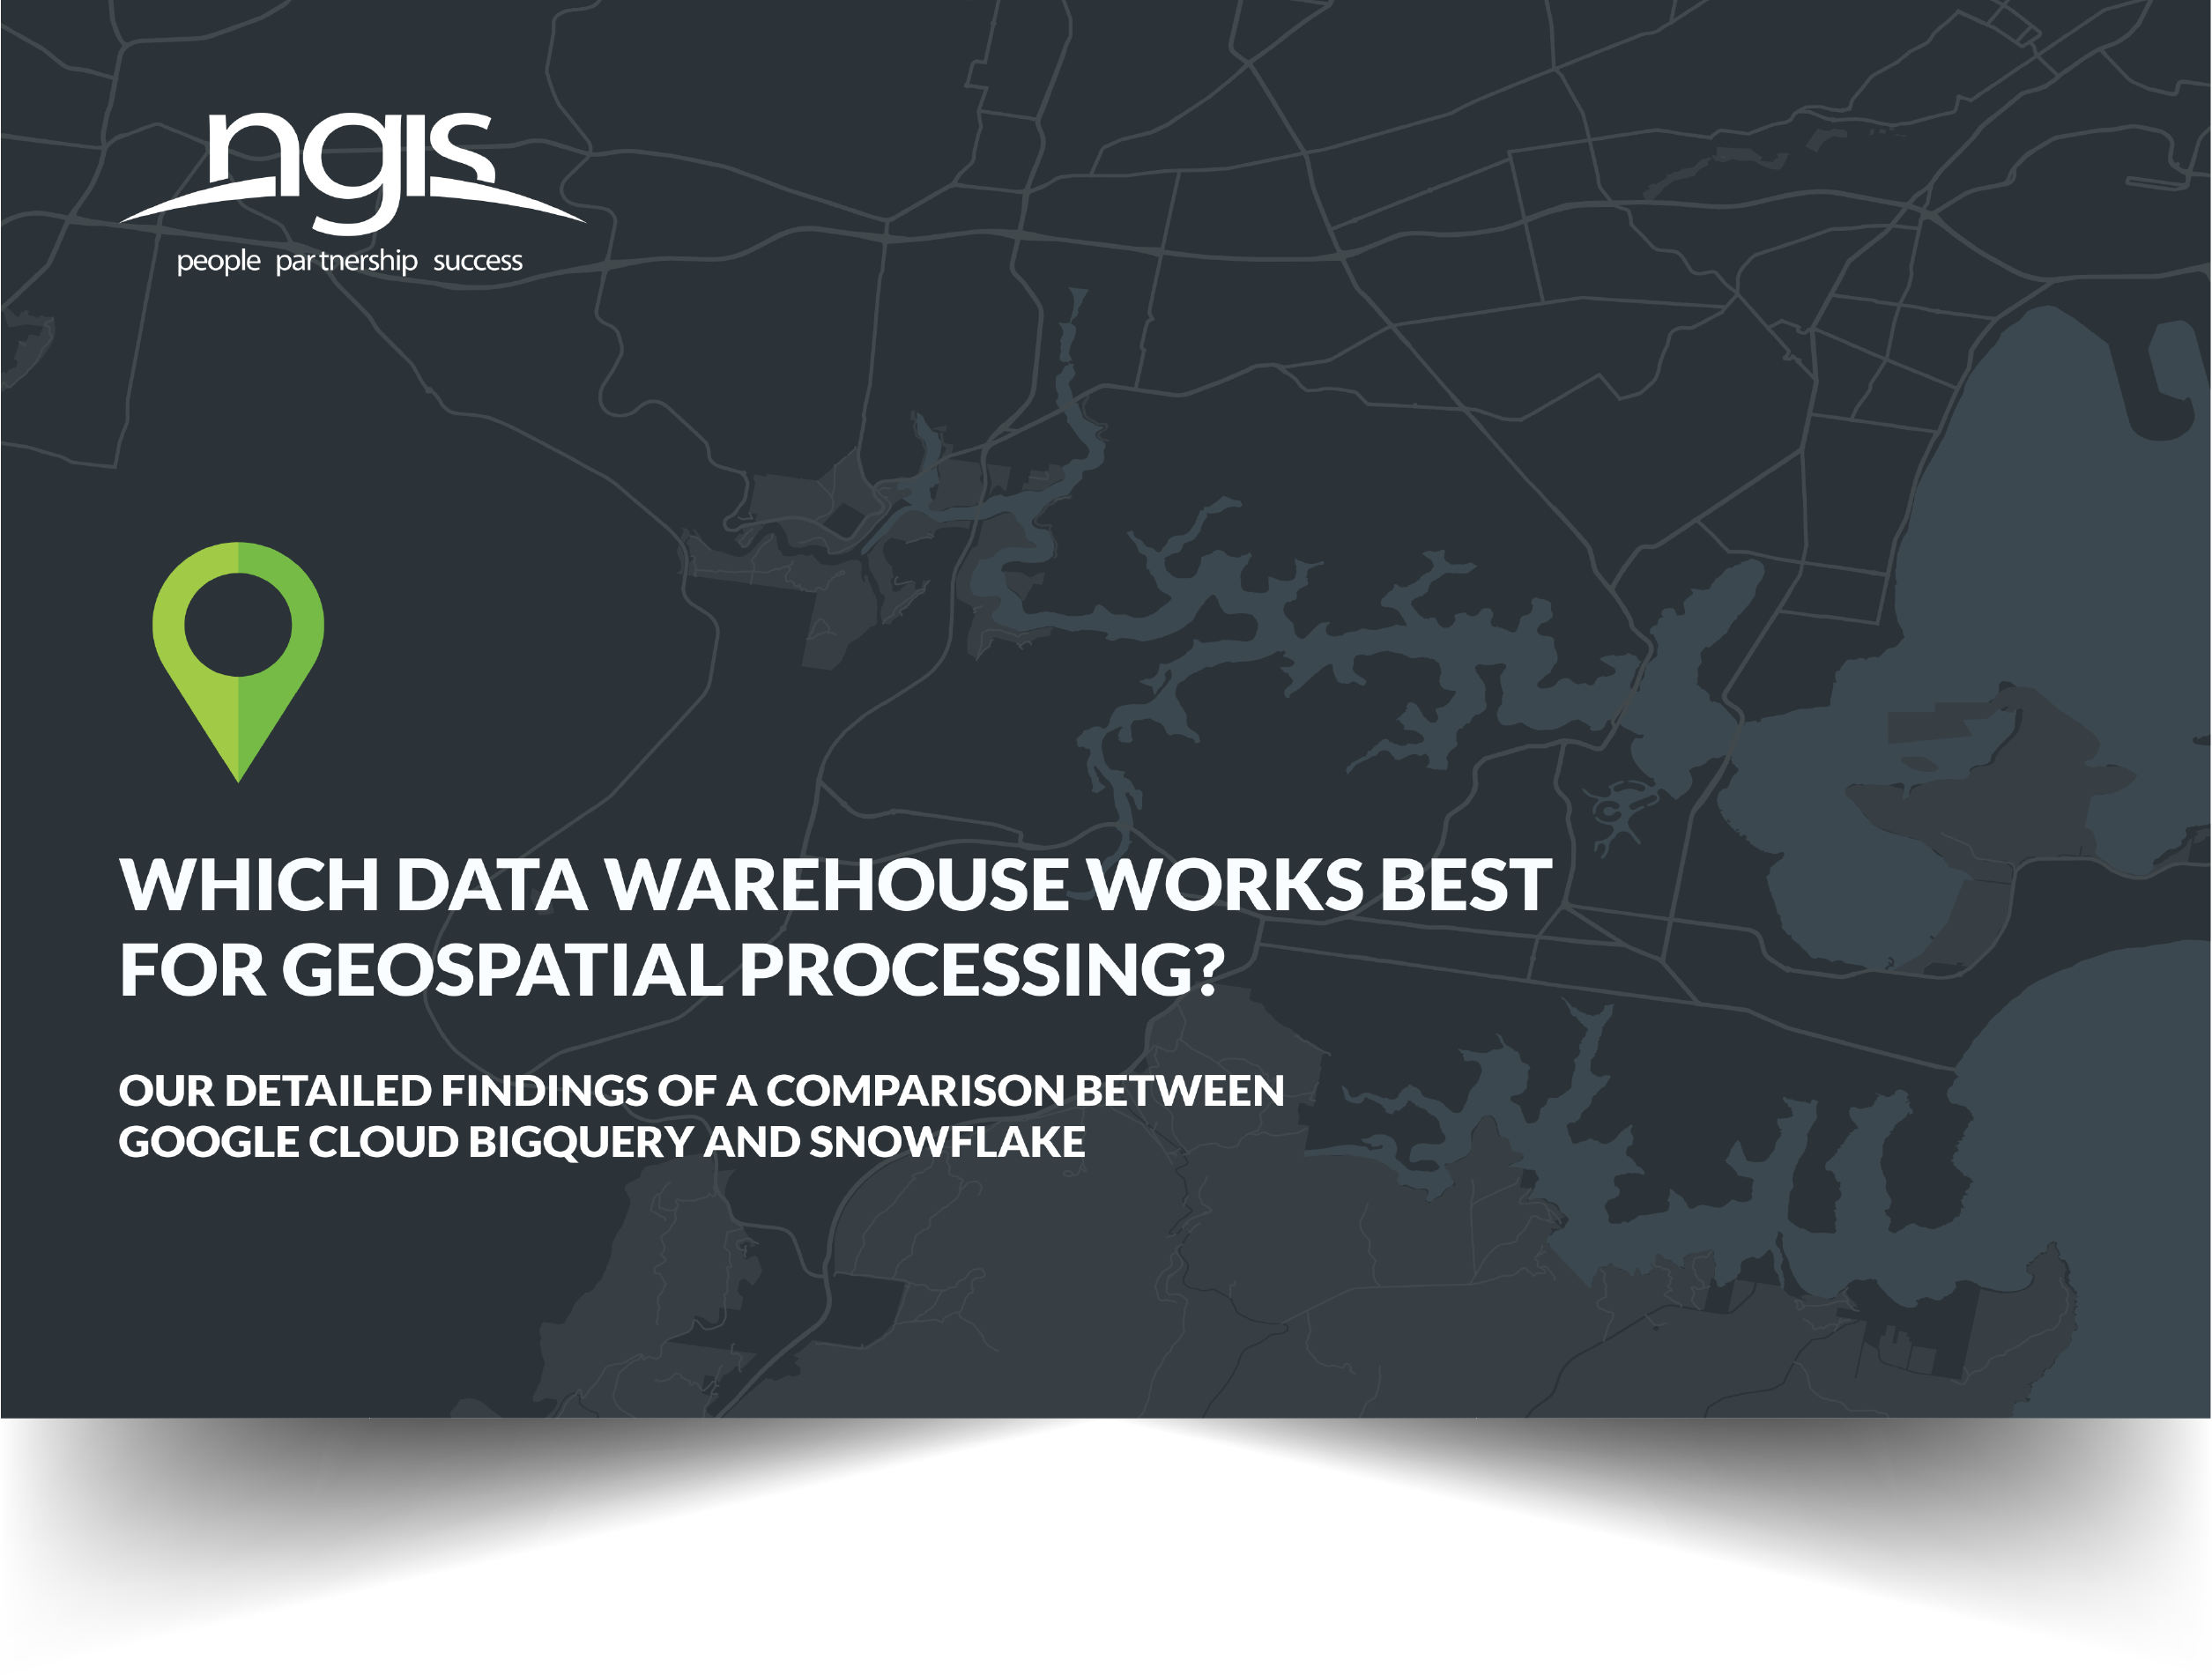 What Cloud data warehouse is best for geospatial processing?